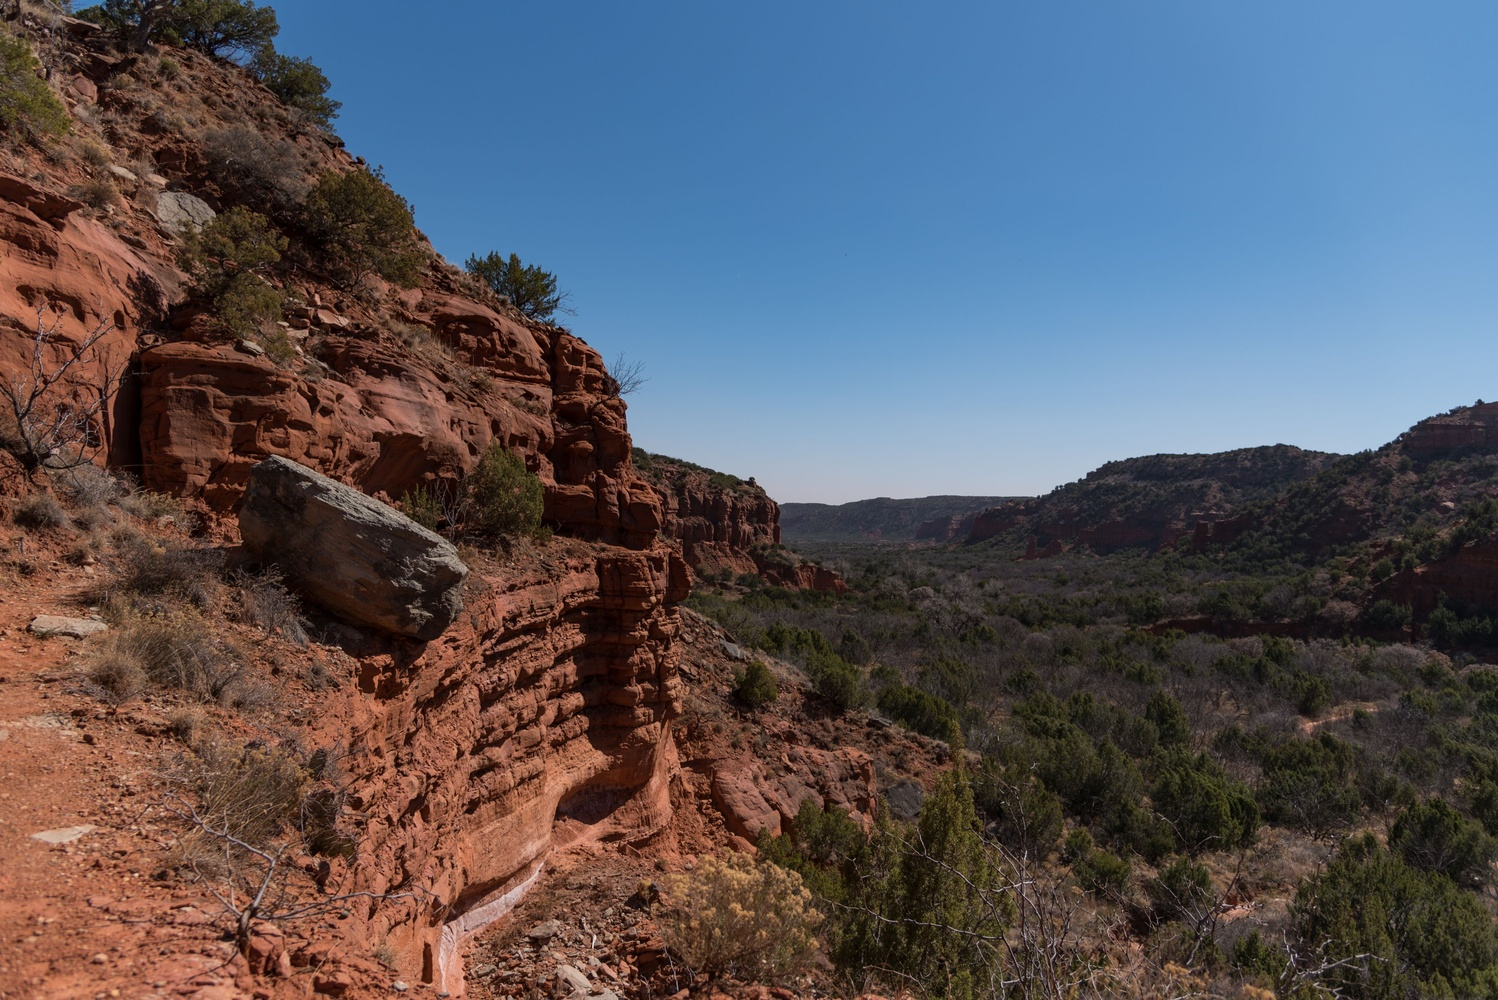 Cliffs of Caprock Canyons by Jason Frels